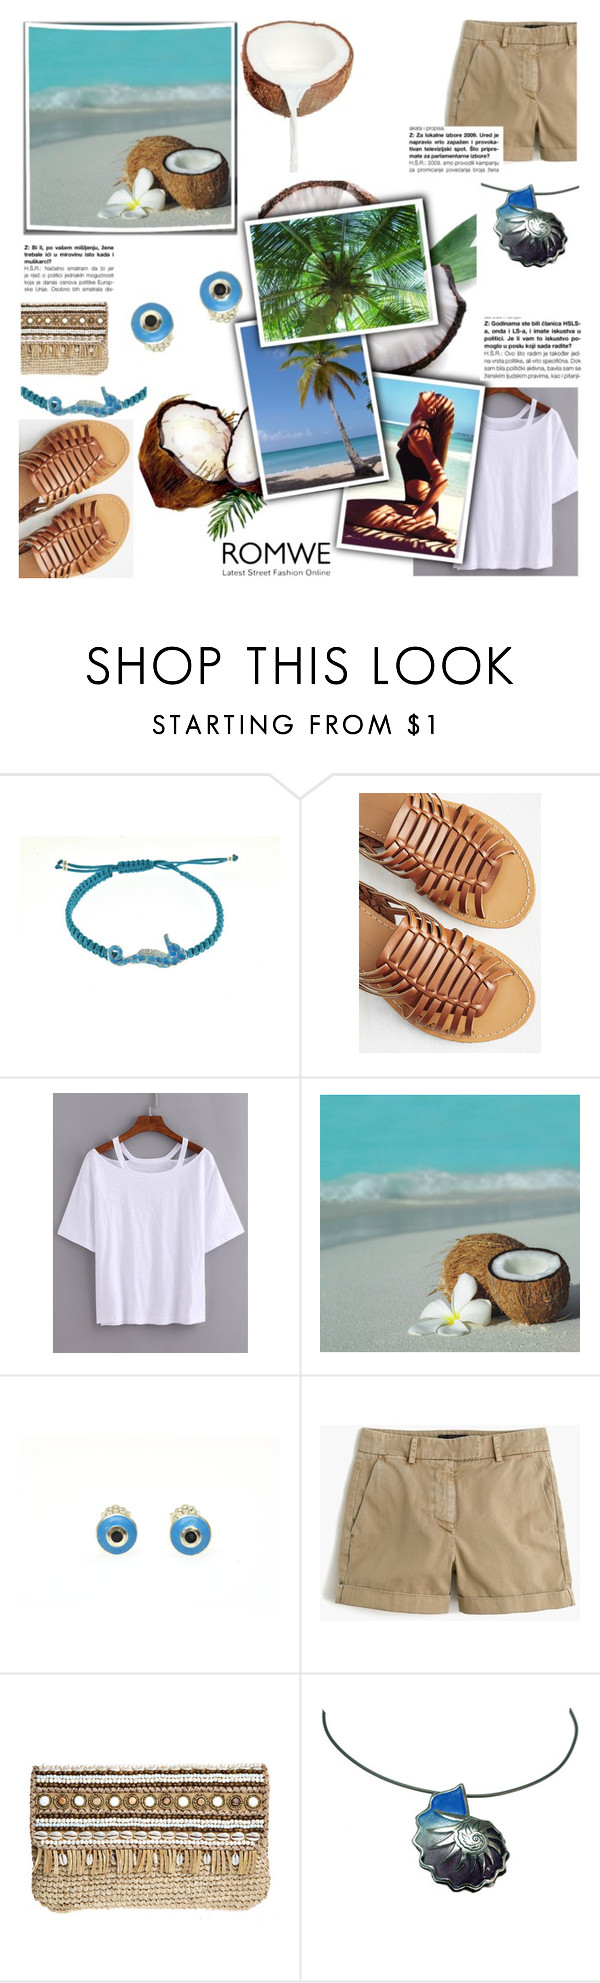 """Coconut"" by giampourasjewel ❤ liked on Polyvore featuring J.Crew, Skemo and romwe"